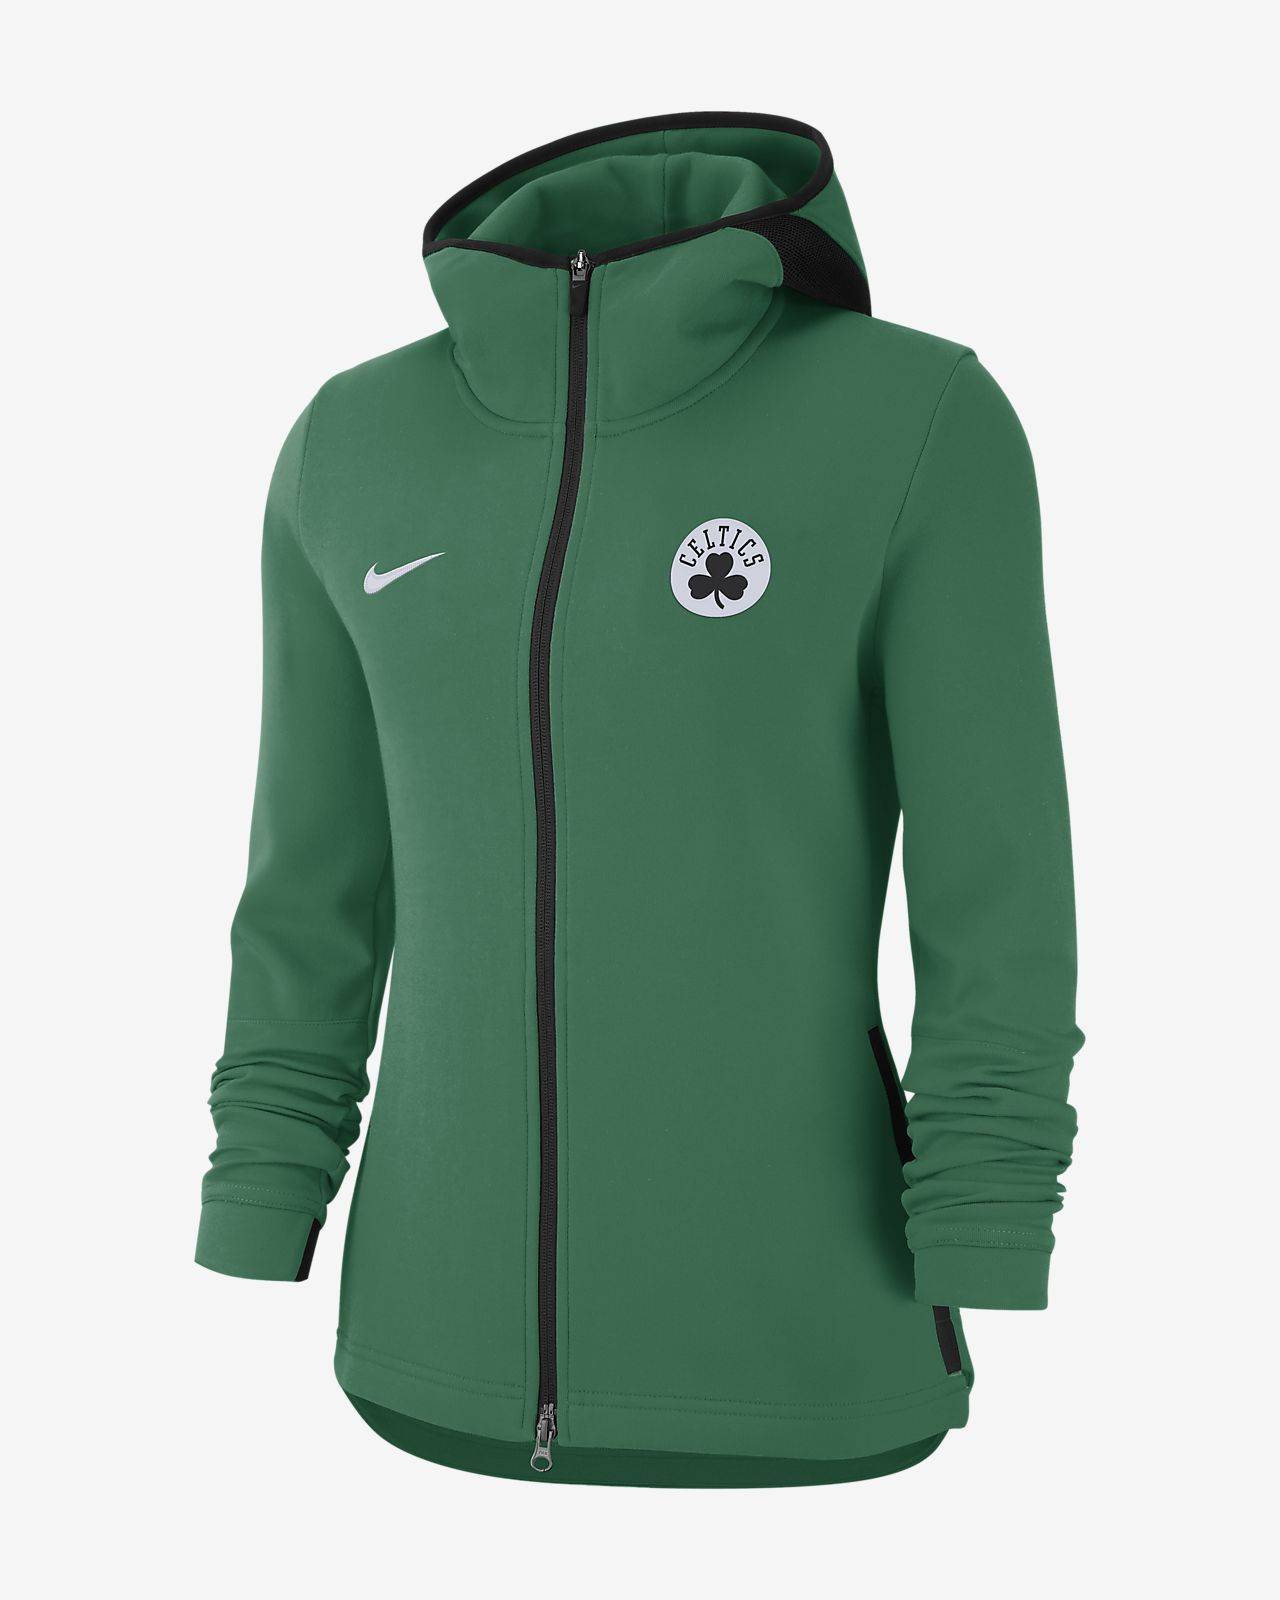 22deaa0232c Boston Celtics Nike Dri-FIT Showtime Women s NBA Hoodie. Nike.com